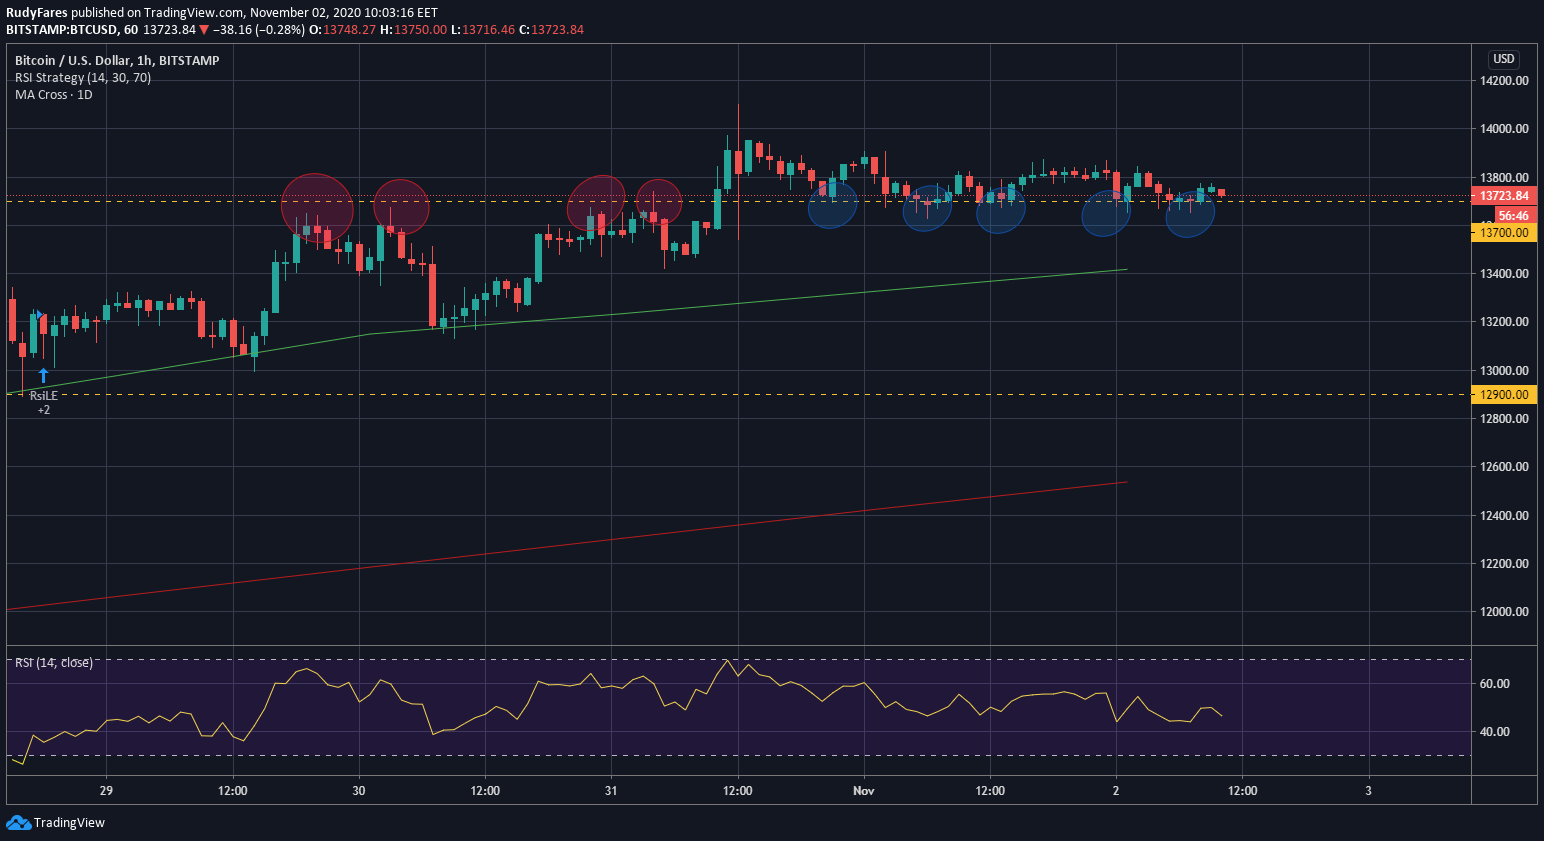 BTC/USD price 1H chart showing the important USD 13,700 level